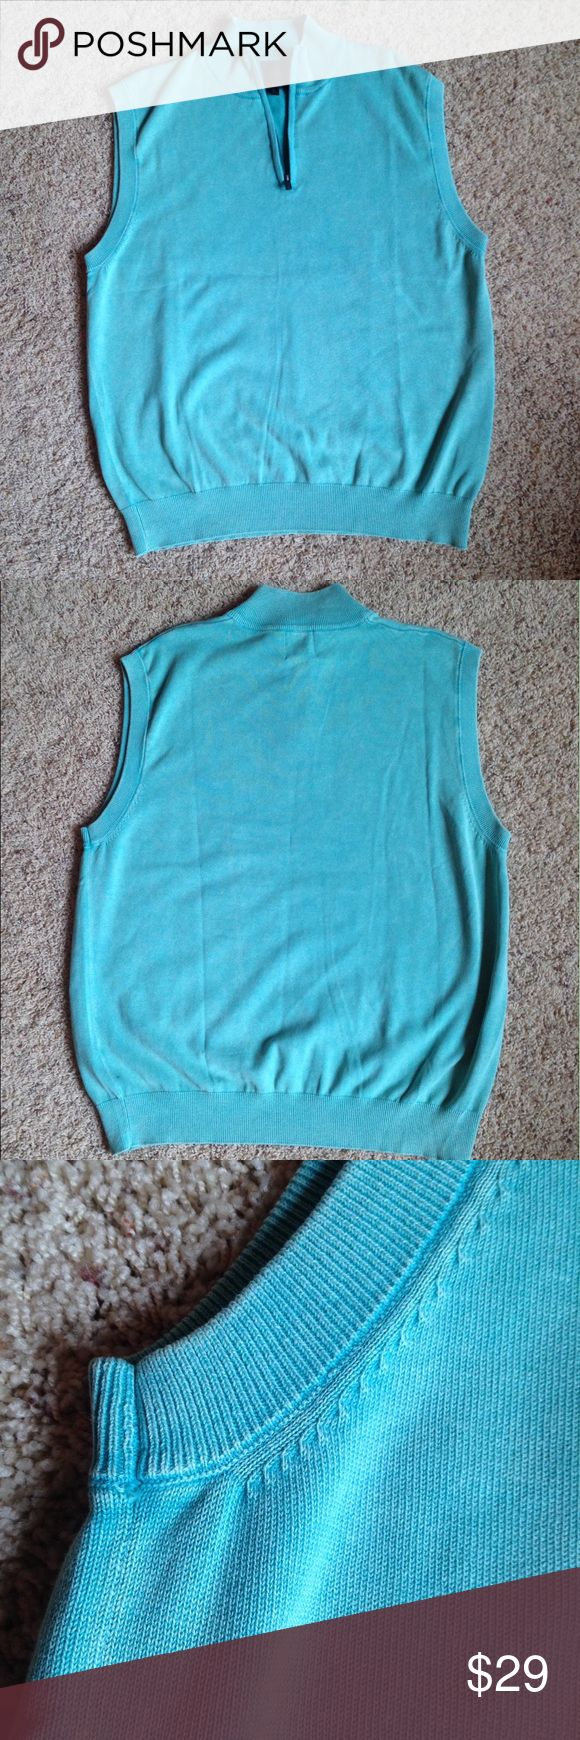 F/X Fusion Men's Sweater Vest Sea Foam Size Large This large vest from F/X Fusion is in great condition! A pretty vintage looking sea foam green color with a half zipper collar. 100% cotton. Perfect for the golf course or the office! F/X Fusion Suits & Blazers Vests